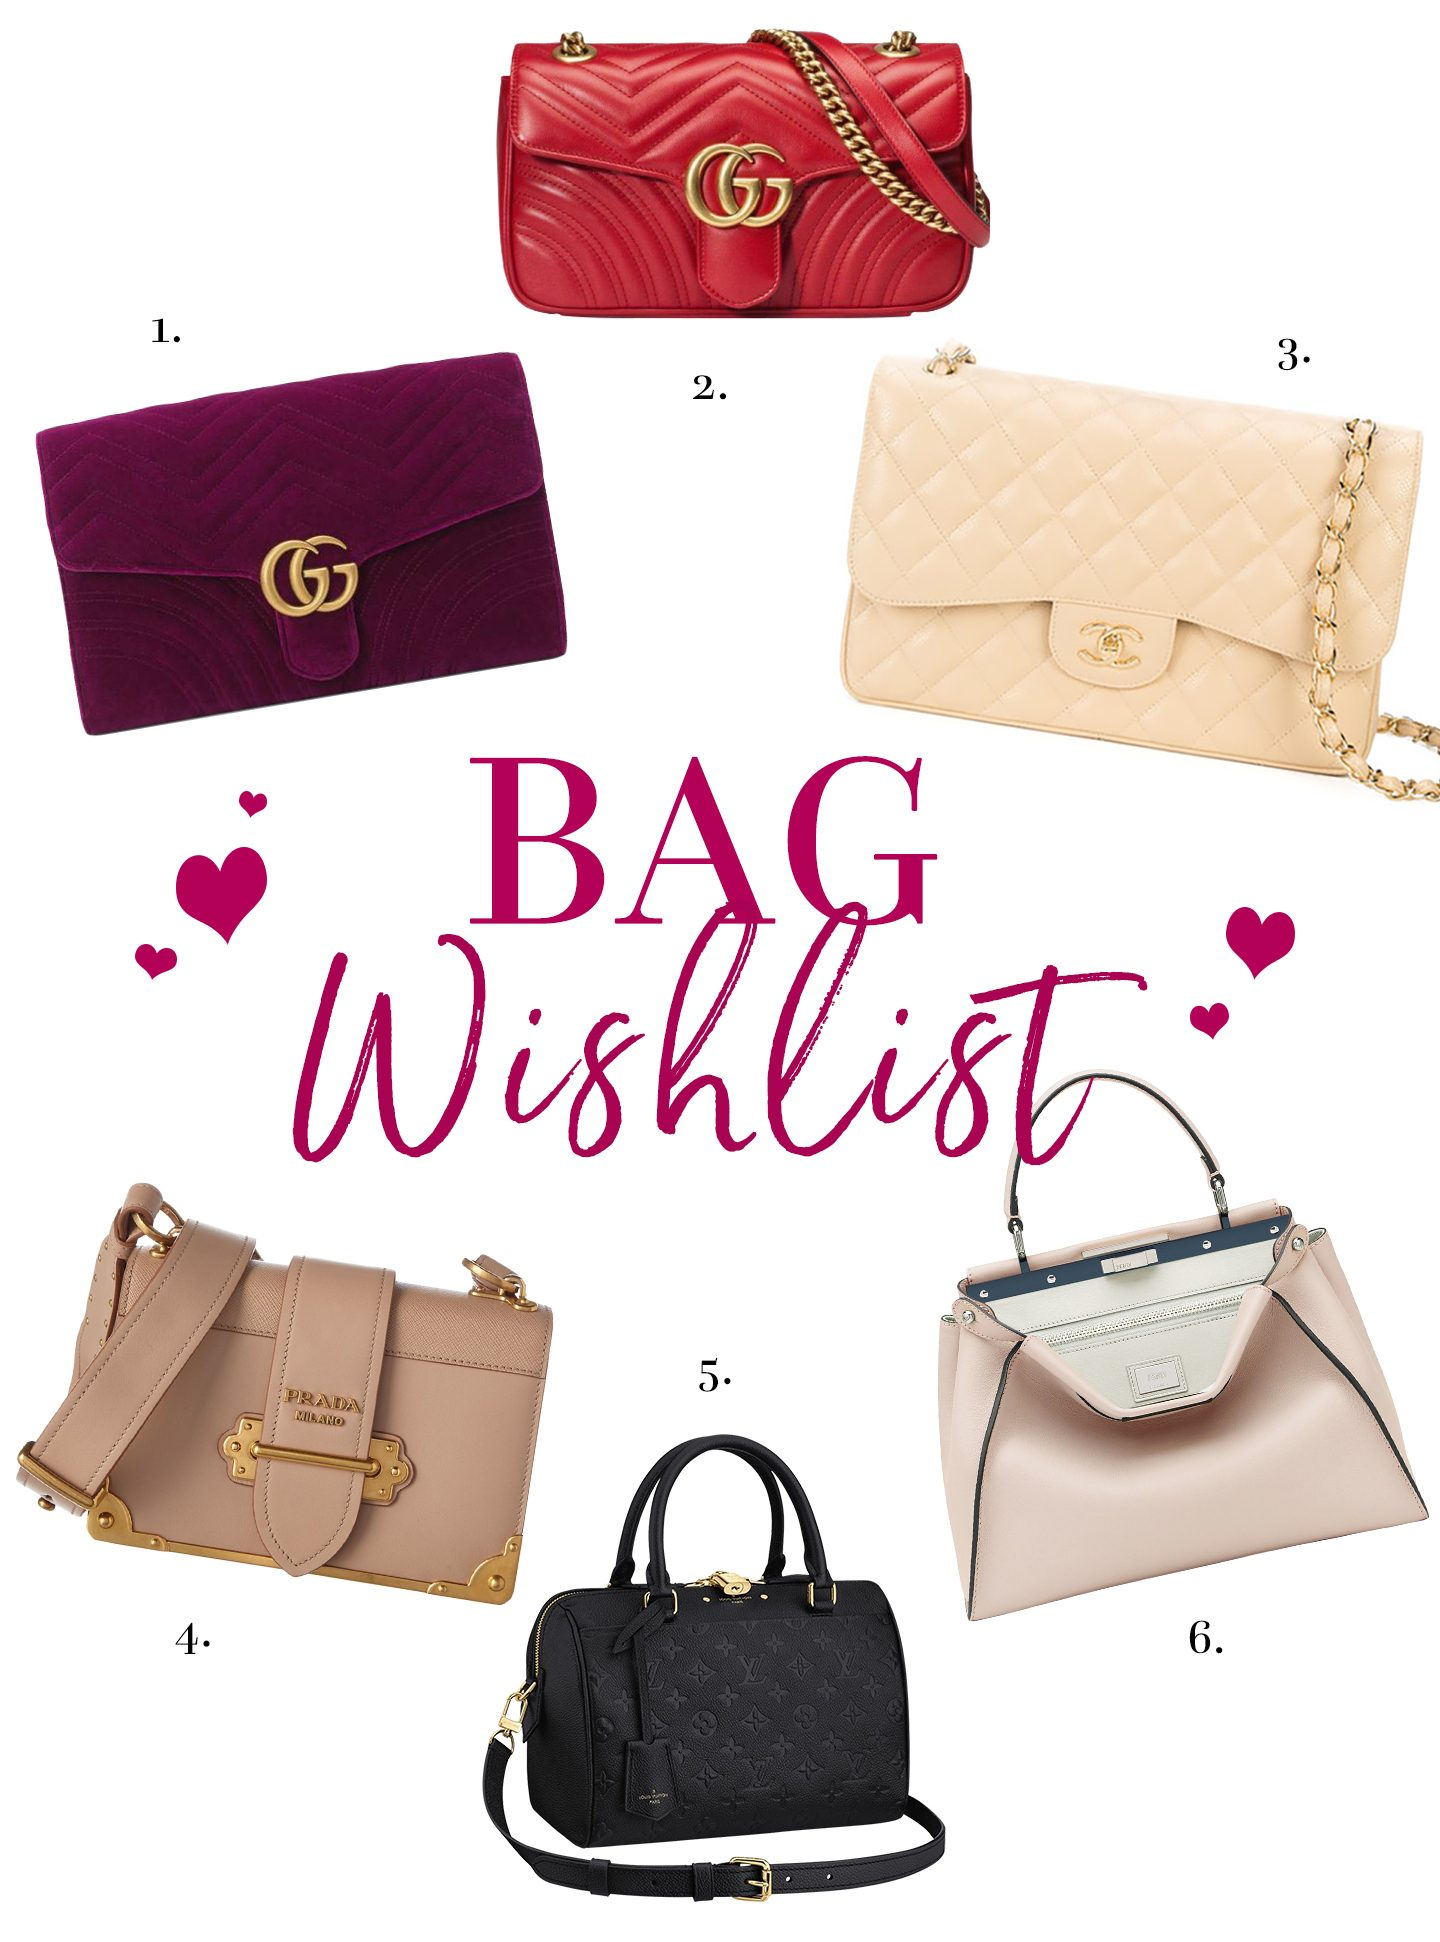 78b550e0d055 I haven't done a designer bag wishlist post in a very long time on here so  now that I don't have a big ol' wedding to pay for, I thought it was ...